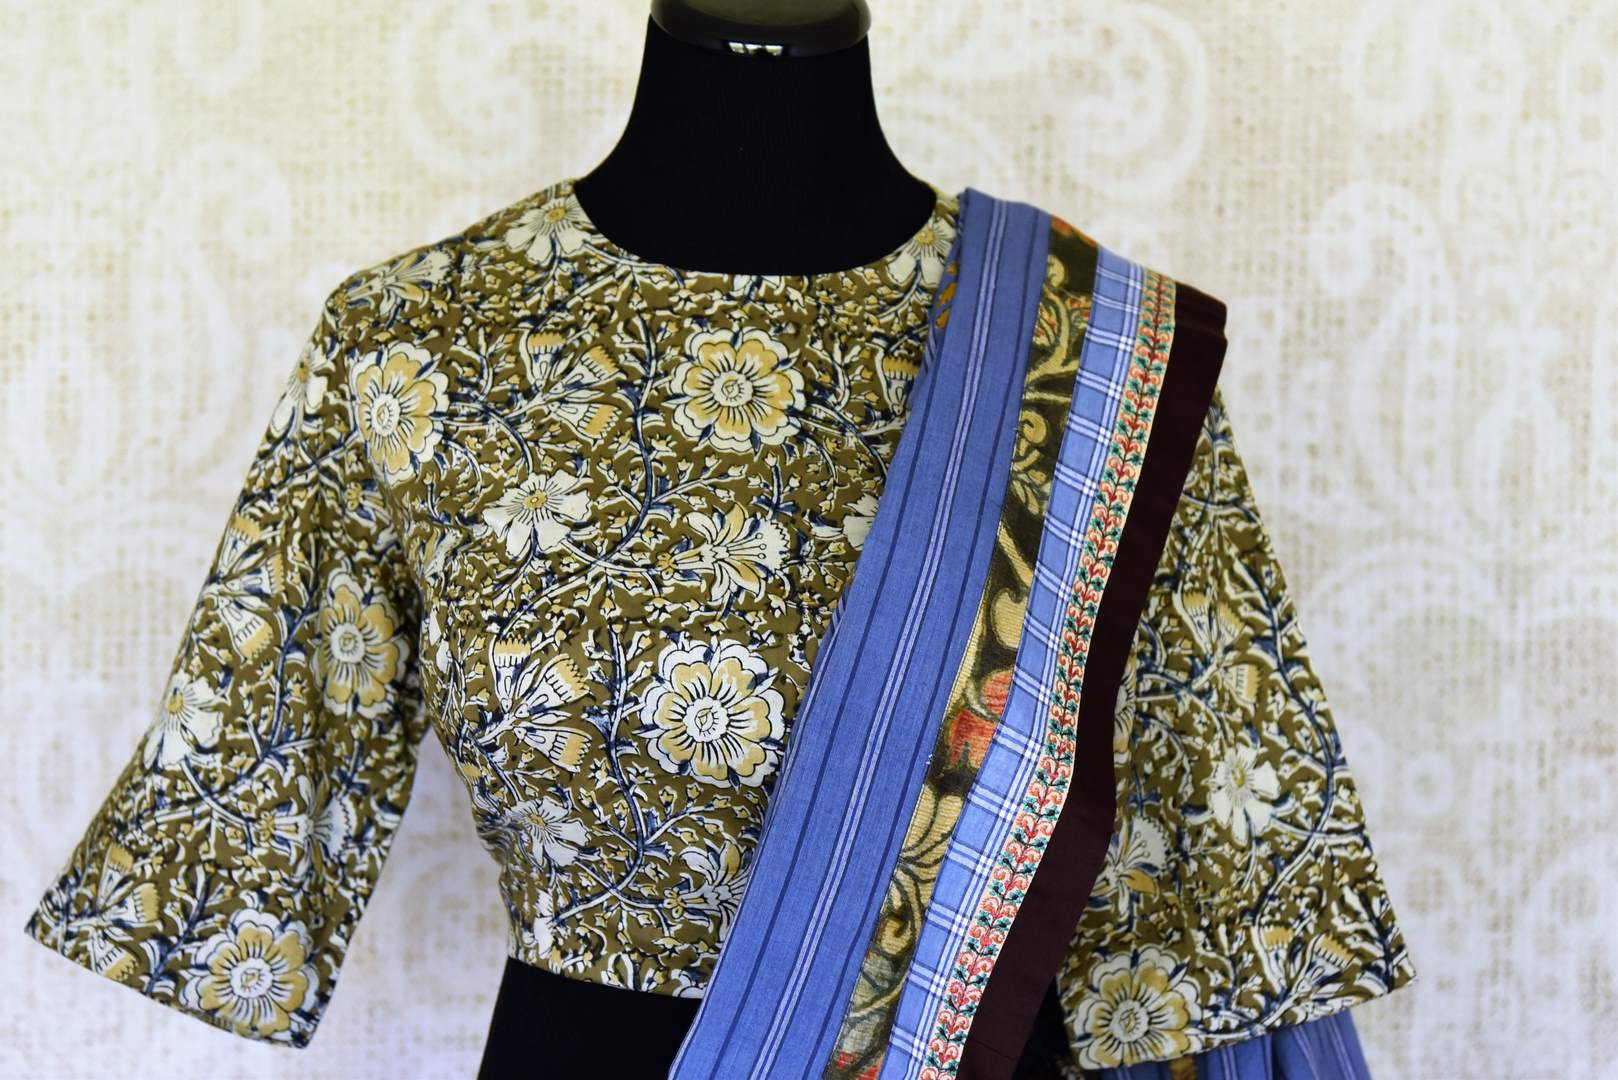 Buy blue linen sari with saree blouse online in USA and Kalamkari applique. Add tasteful Indian woven saris to your ethnic wardrobe from Pure Elegance Indian fashion store in USA. We have an exclusive range of Indian designer sarees, wedding saris, handloom sarees to make your Indian look absolutely captivating.-blouse pallu